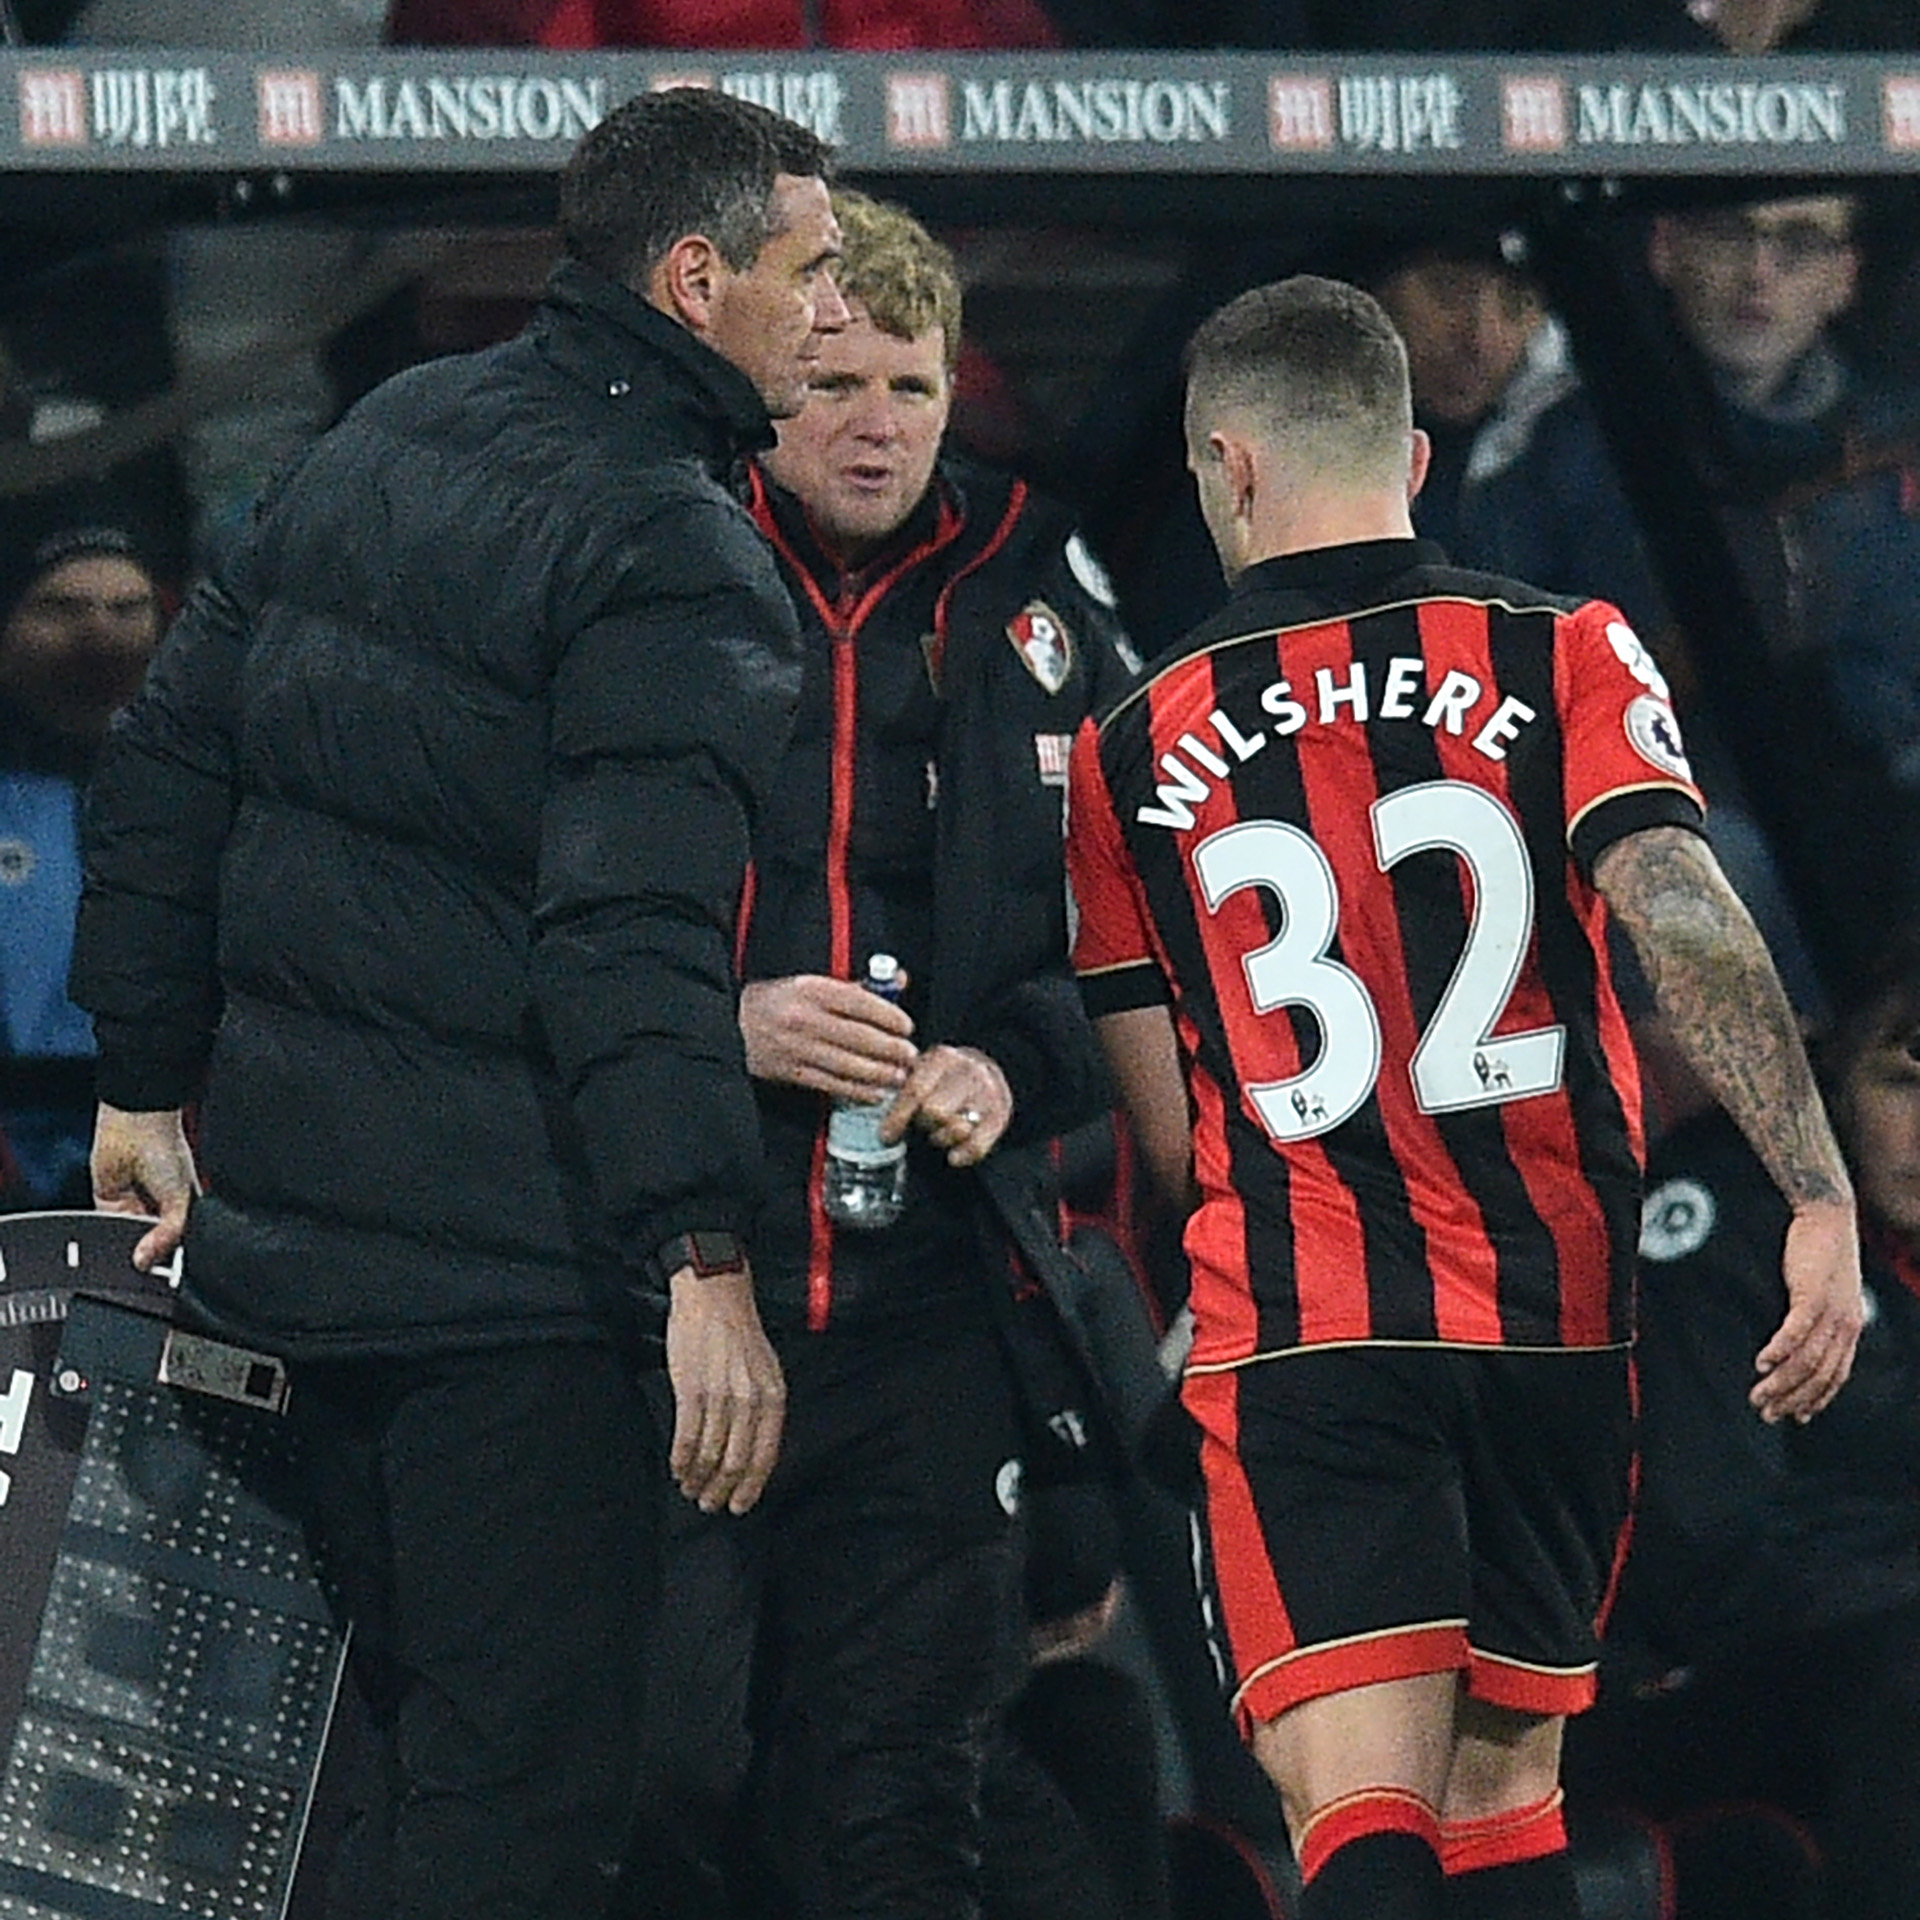 Bournemouth v Man City: Probable Line-ups - Pep Guardiola still without star midfielder